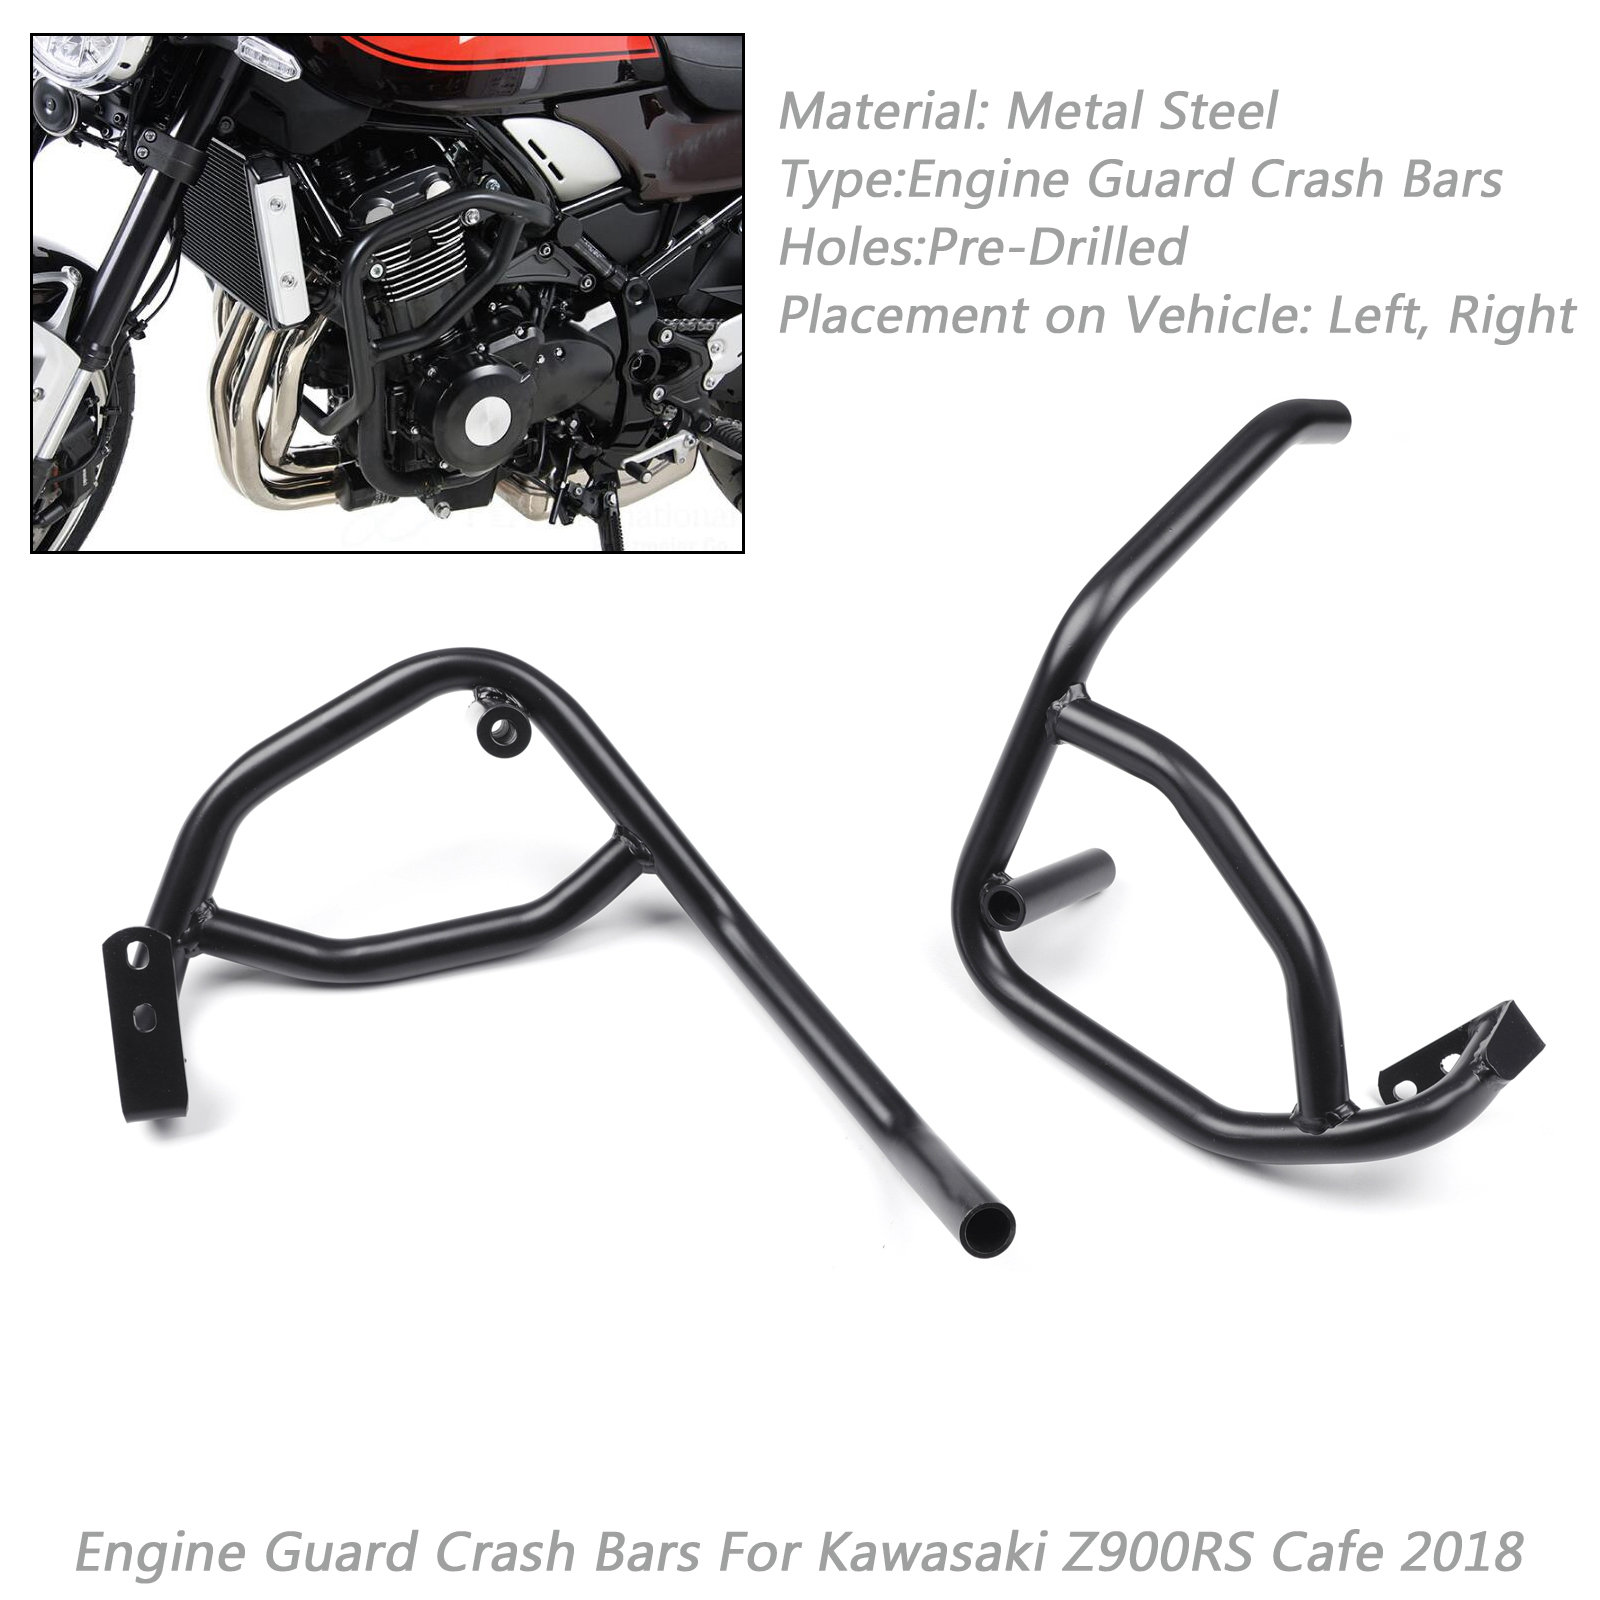 Black Highway Motorcycle Engine Guard Crash Bars For